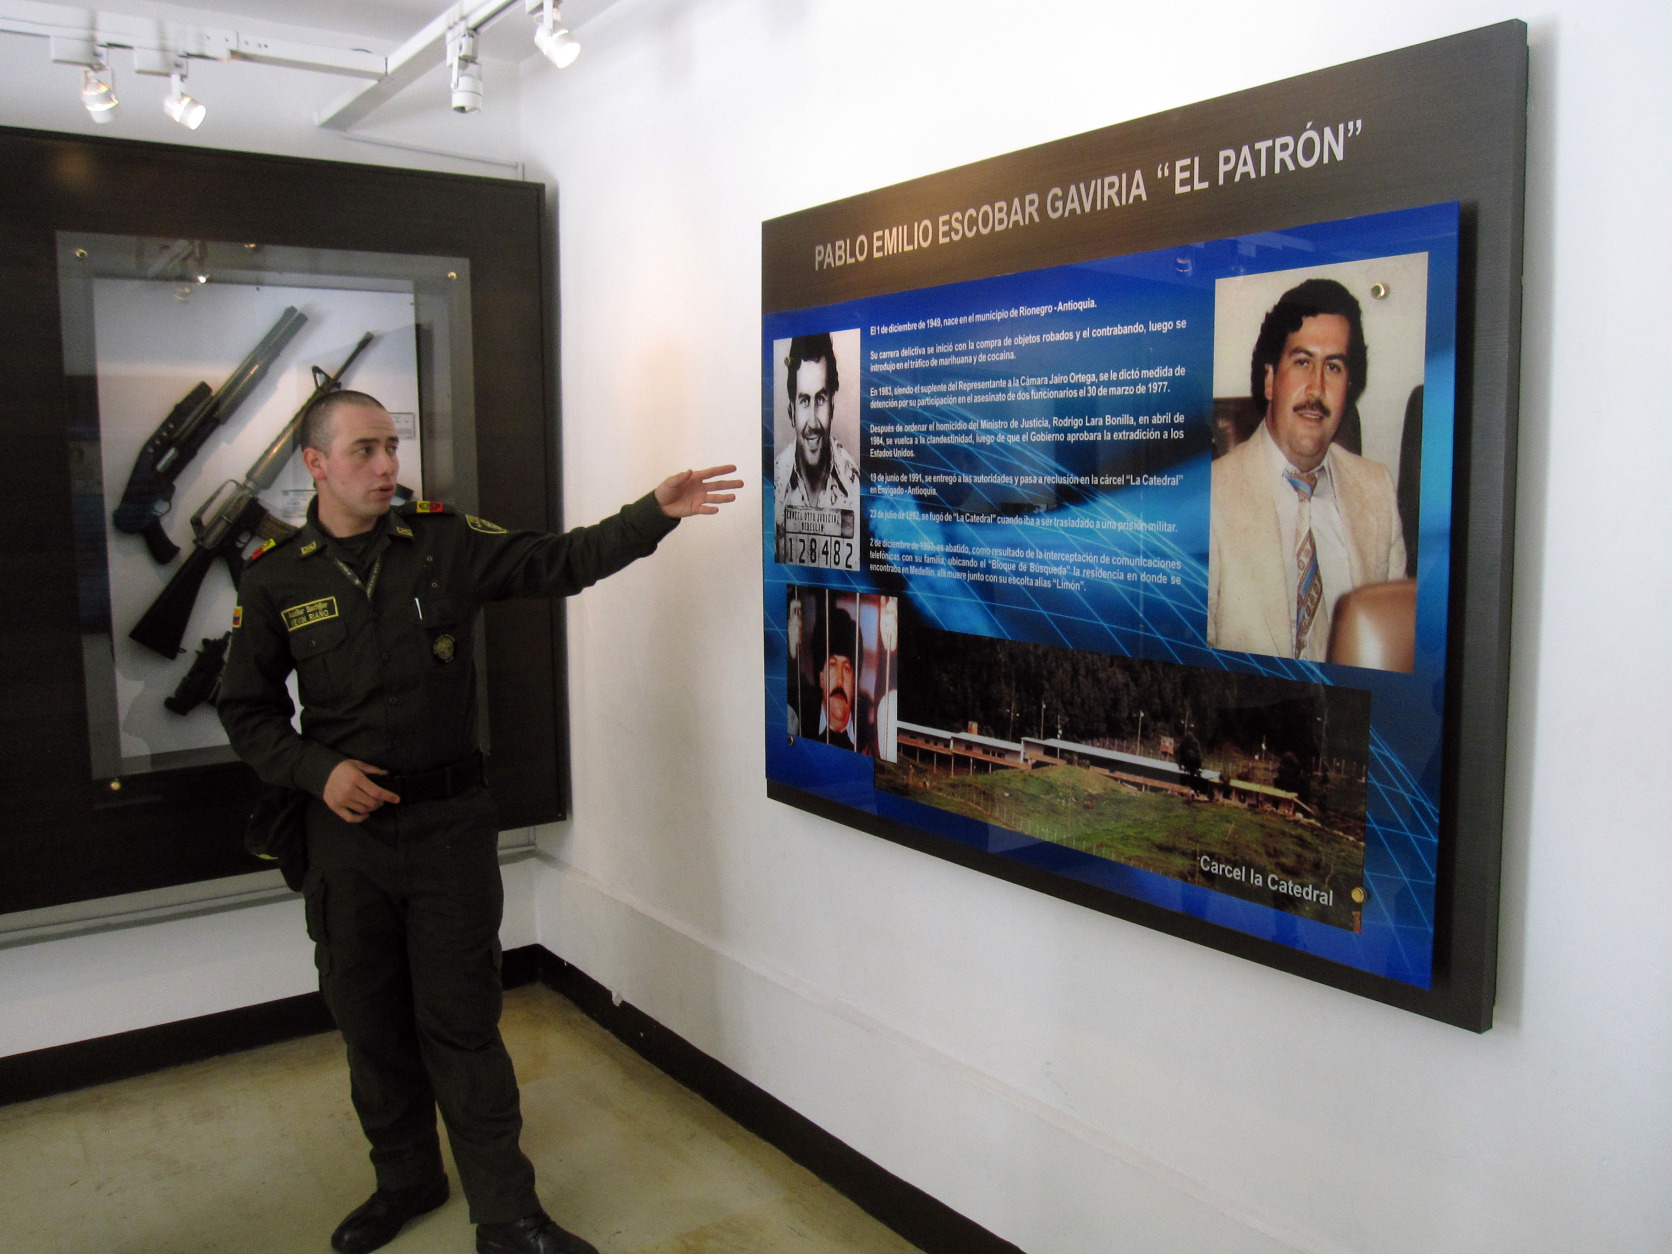 This Dec. 31, 2013 photo shows Kevin Riano explaining an exhibit about Pablo Escobar at the National Police Museum in Bogota, Colombia. Escobar, the notorious drug kingpin, was assassinated in a police ambush in Medellin in 1993. The museum offers free tours in English led by young Colombians like Riano who are fulfilling a required national service stint. (AP Photo/Beth J. Harpaz)